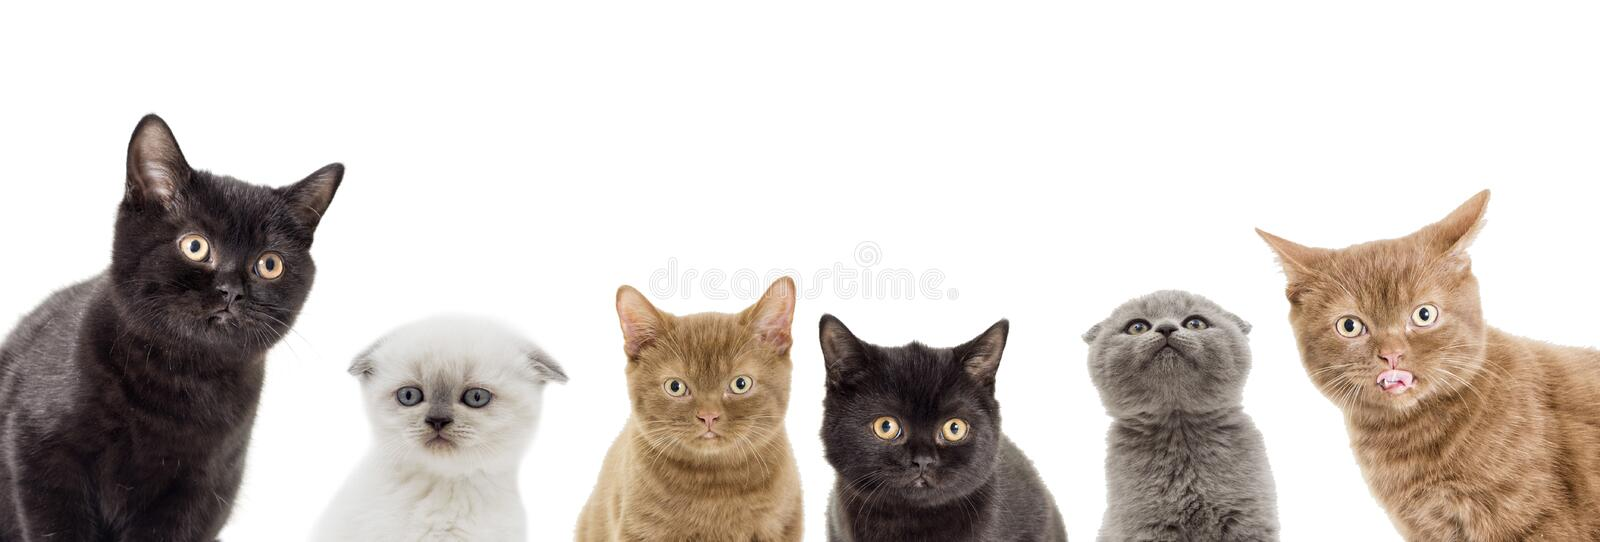 Funny kittens peeking. On a white background royalty free stock images